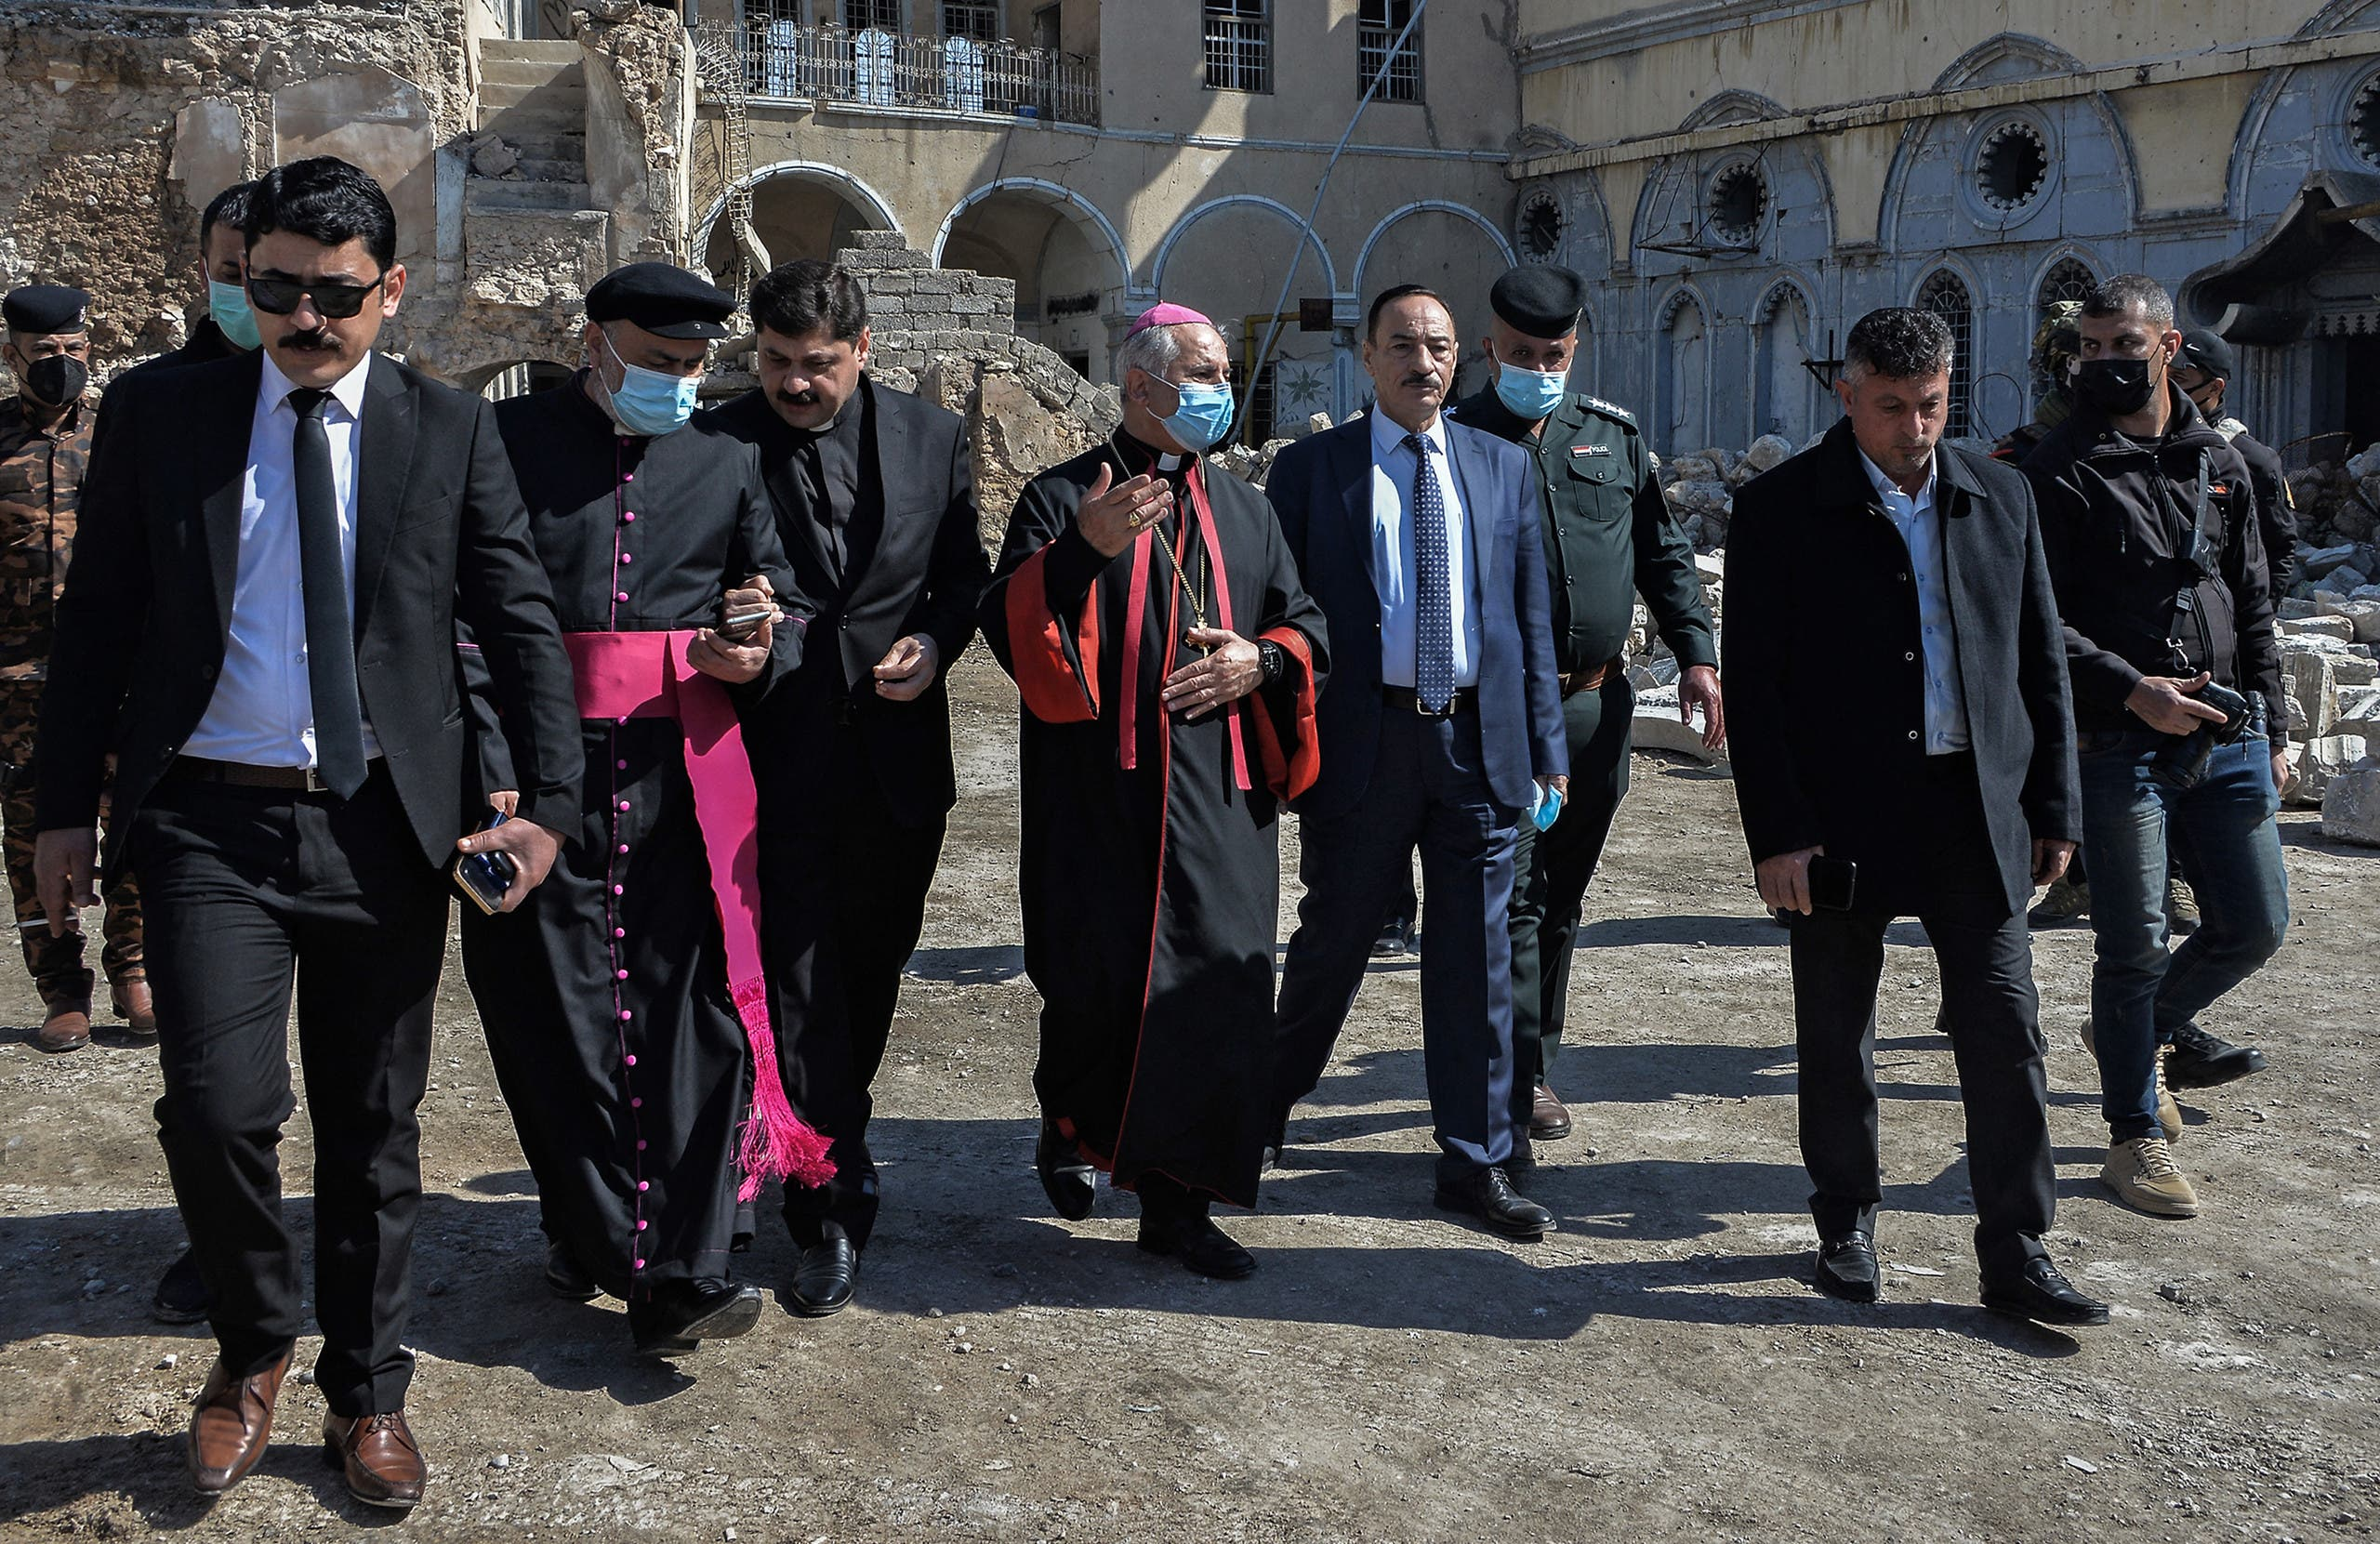 Archbishop of the Archeparchy of Mosul Najib Mikhael Moussa (C) and Father Raed Adel (C-L) and Niniveh Governor Najim al-Jabouri (C-R) escort the members of the Papal convoy during their visit to Iraq's northern city of Mosul, on February 23, 2021. (Zaid al-Obeidi/AFP)